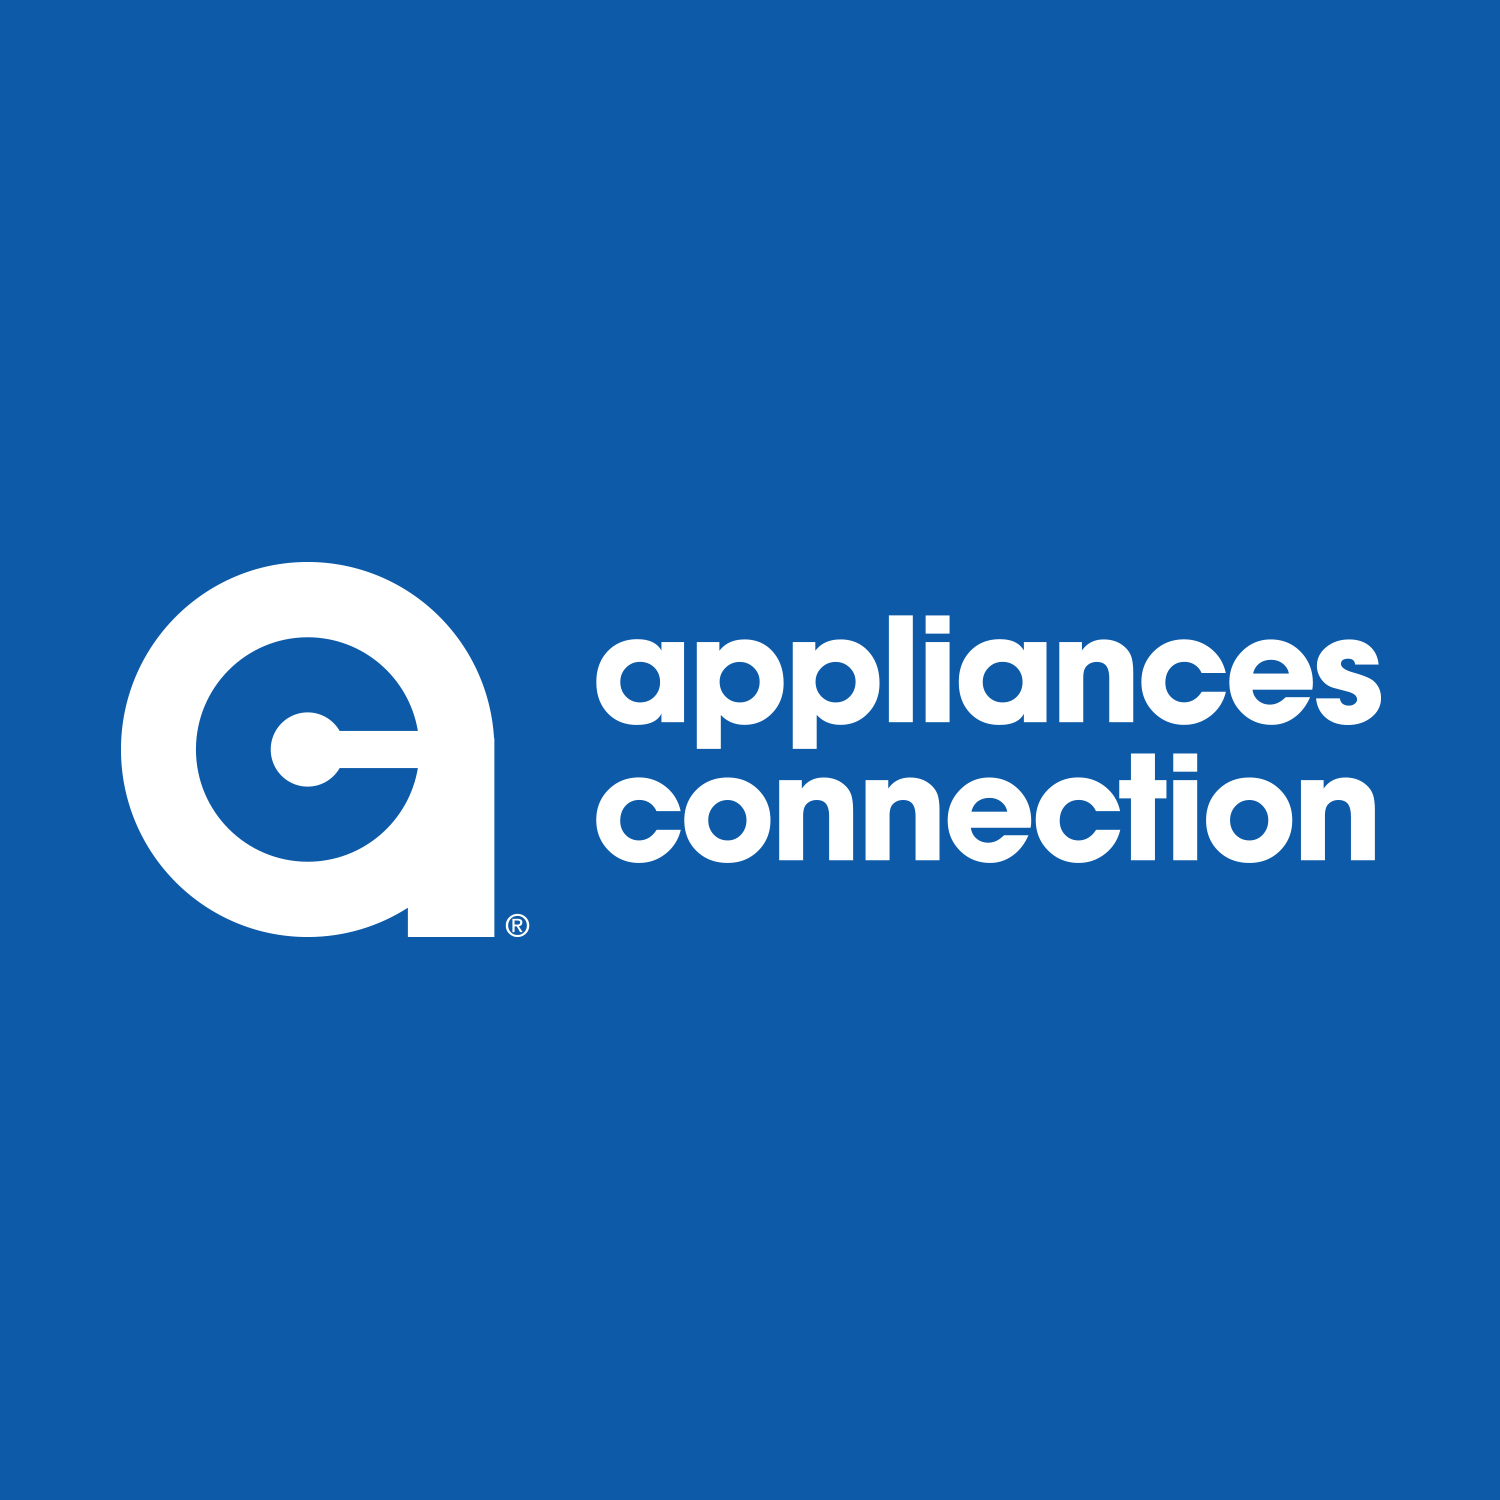 AppliancesConnection Coupons